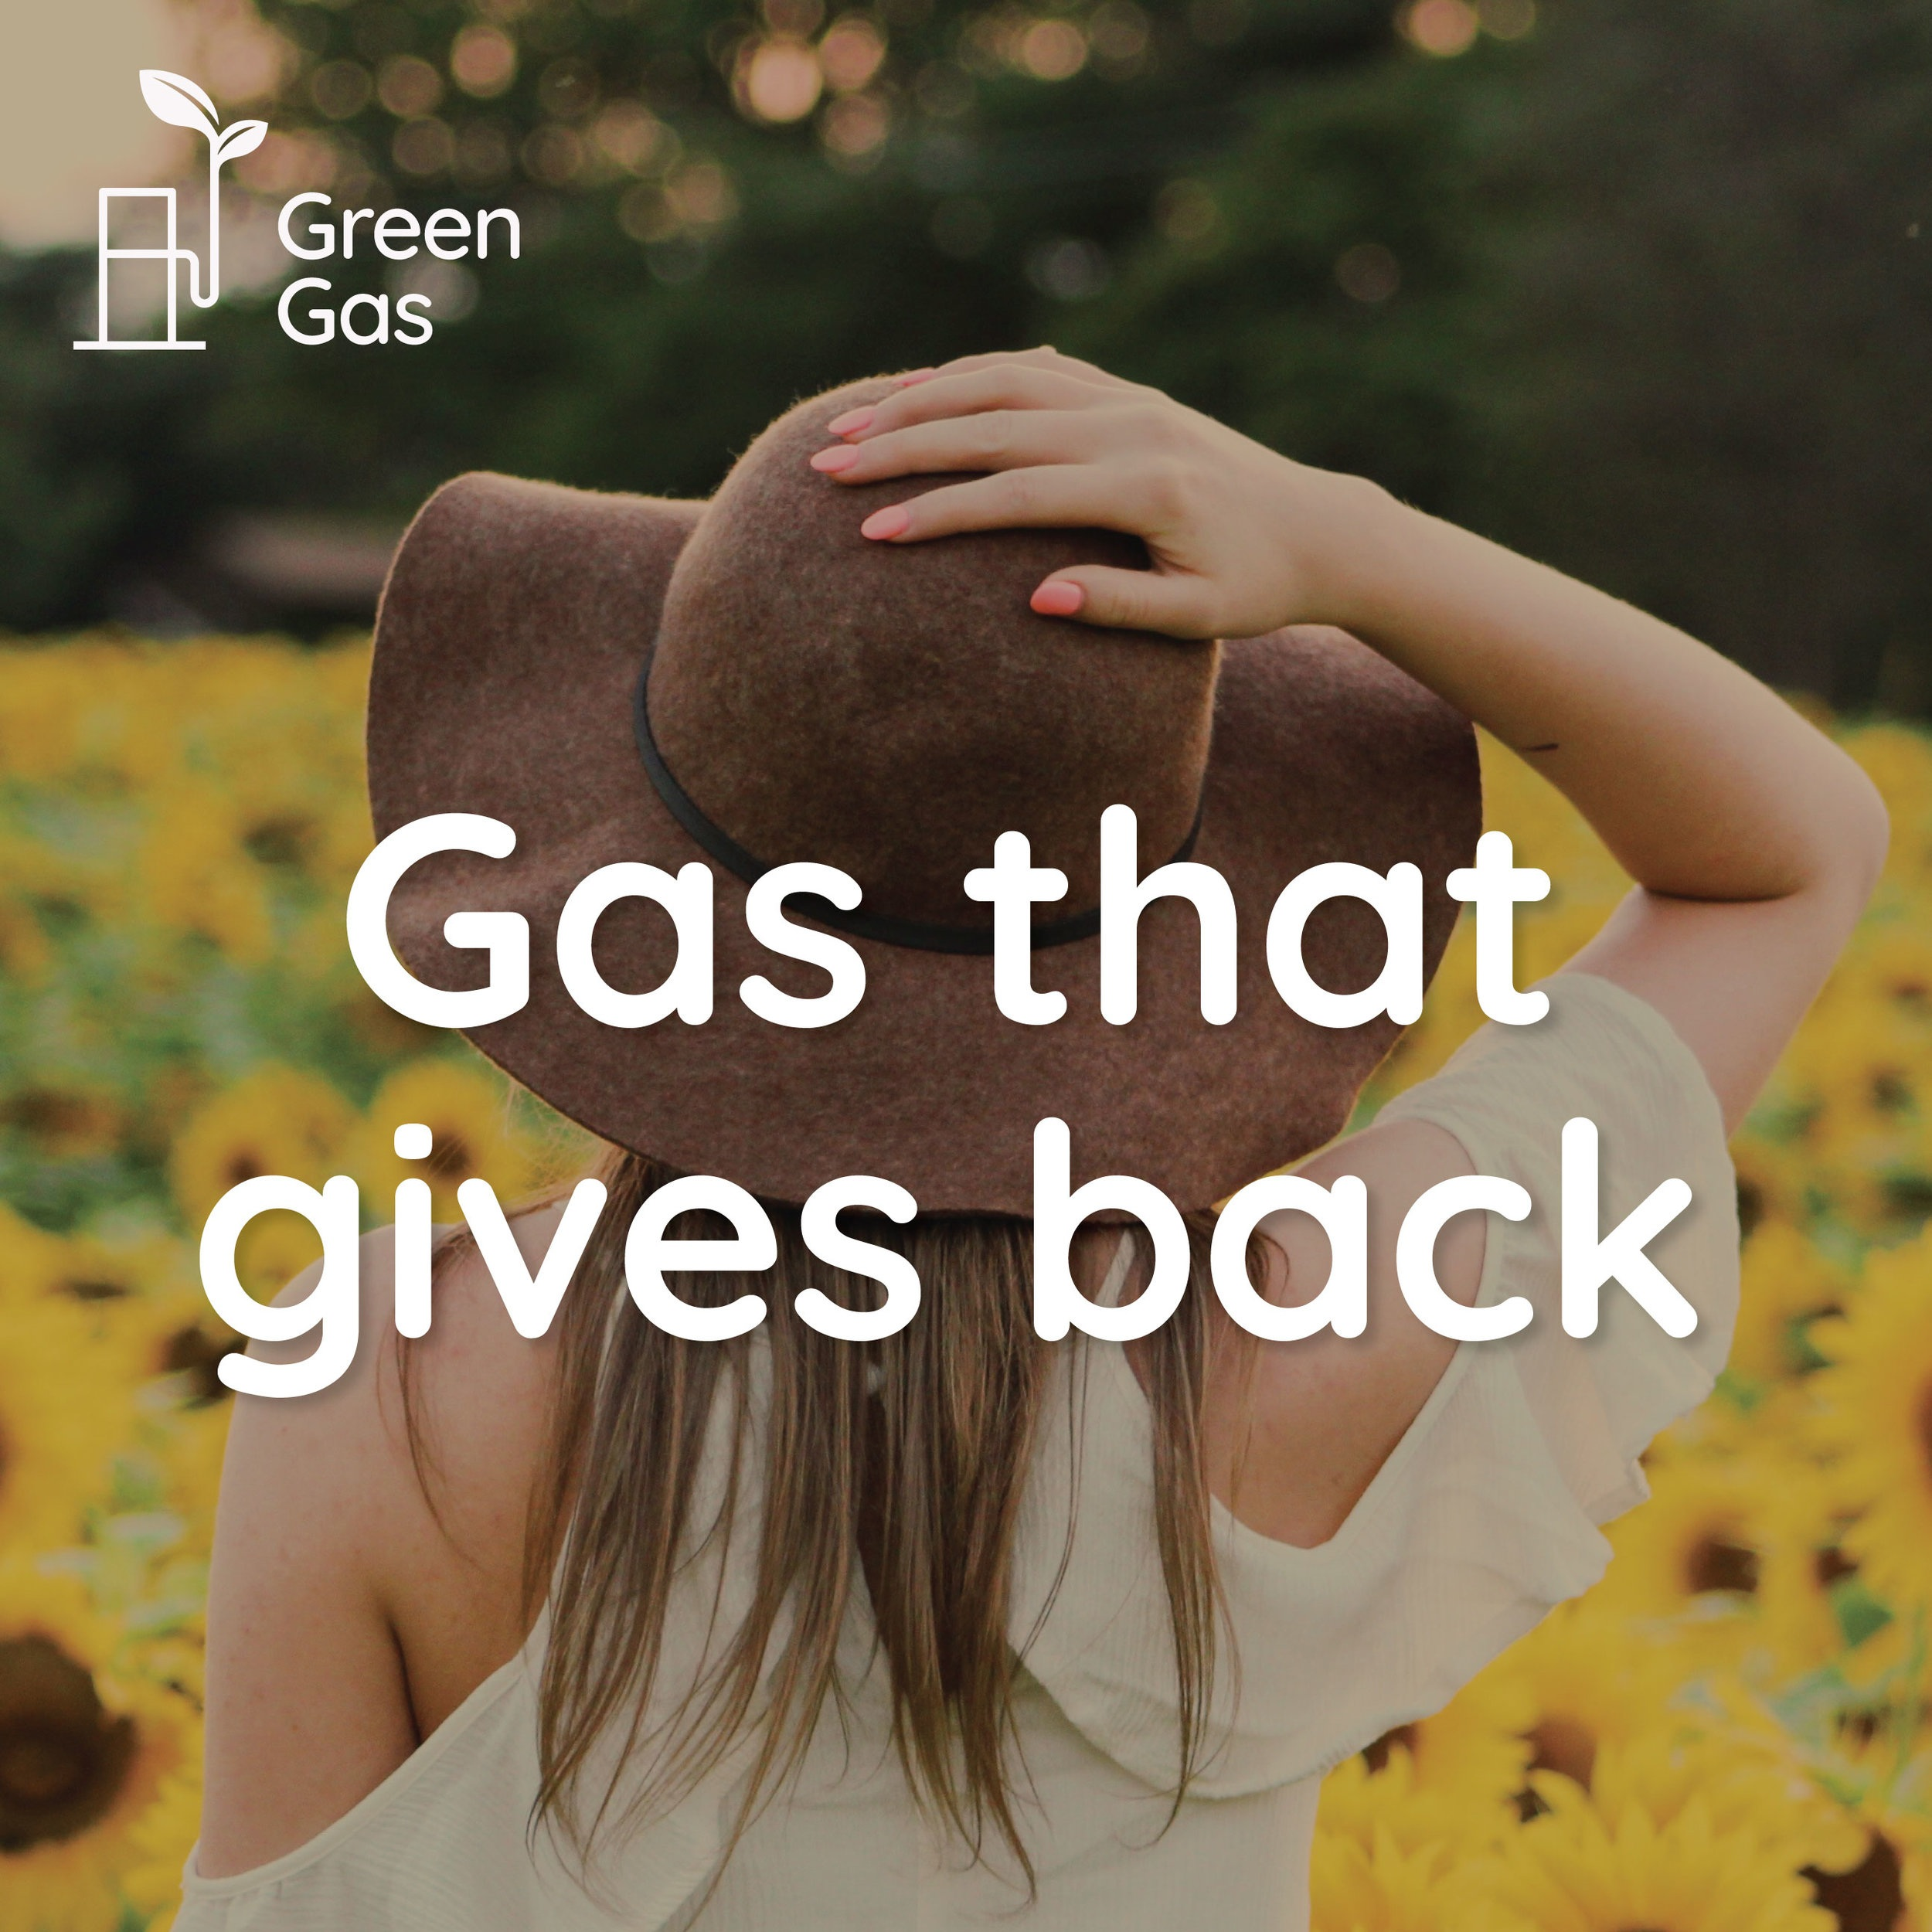 Green Gas - Where? U.S.Focus: Green Gas works to accelerate climate solutions by raising money and awareness for transformative technologies at the point of sale, thereby immediately reducing the climate impact of our transportation system.Advice for travelers:Telecommute, carpool and reduce travel, especially air travel, whenever possible!Use apps like Turo to rent EVs and hybrids, if you need a car in a new city.Travel with a Green Gas Card to offset the carbon footprint of any gas purchase you can't avoid.